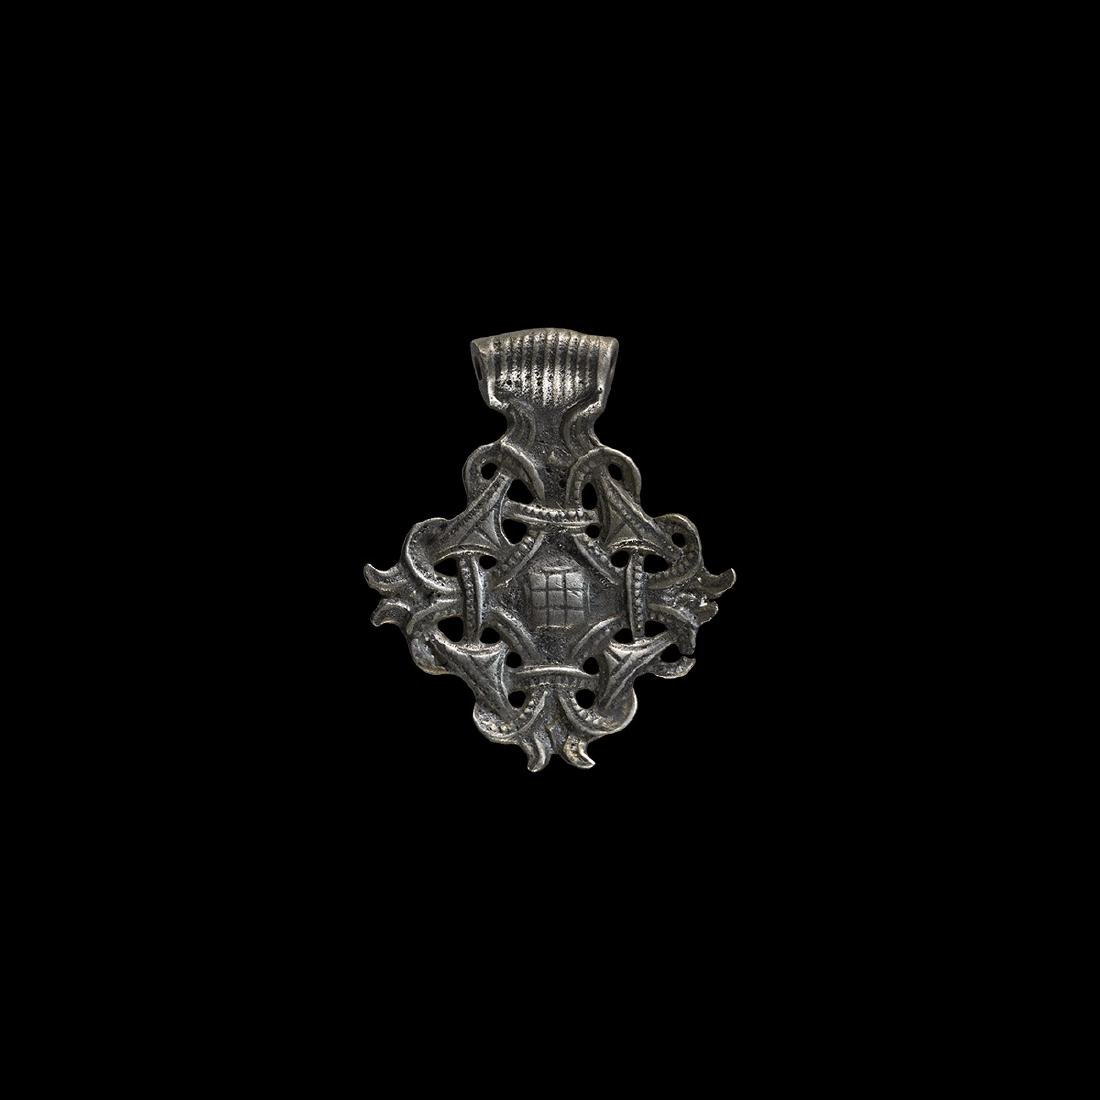 Viking Silver Pendant with Interlaced Design